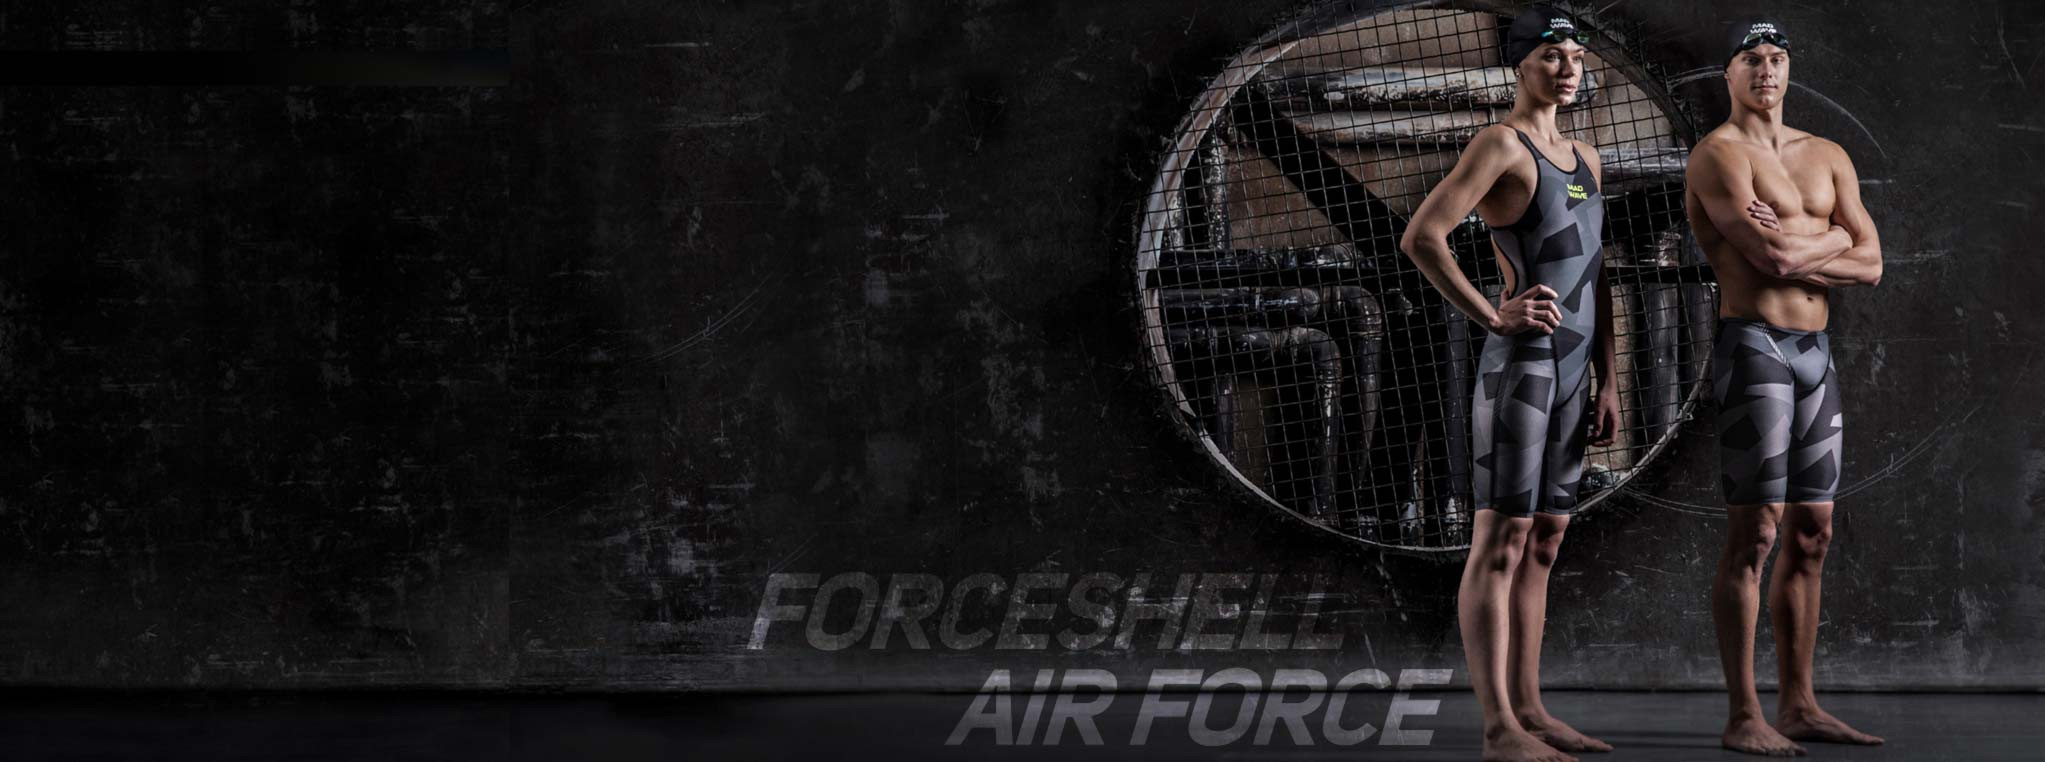 forceshell